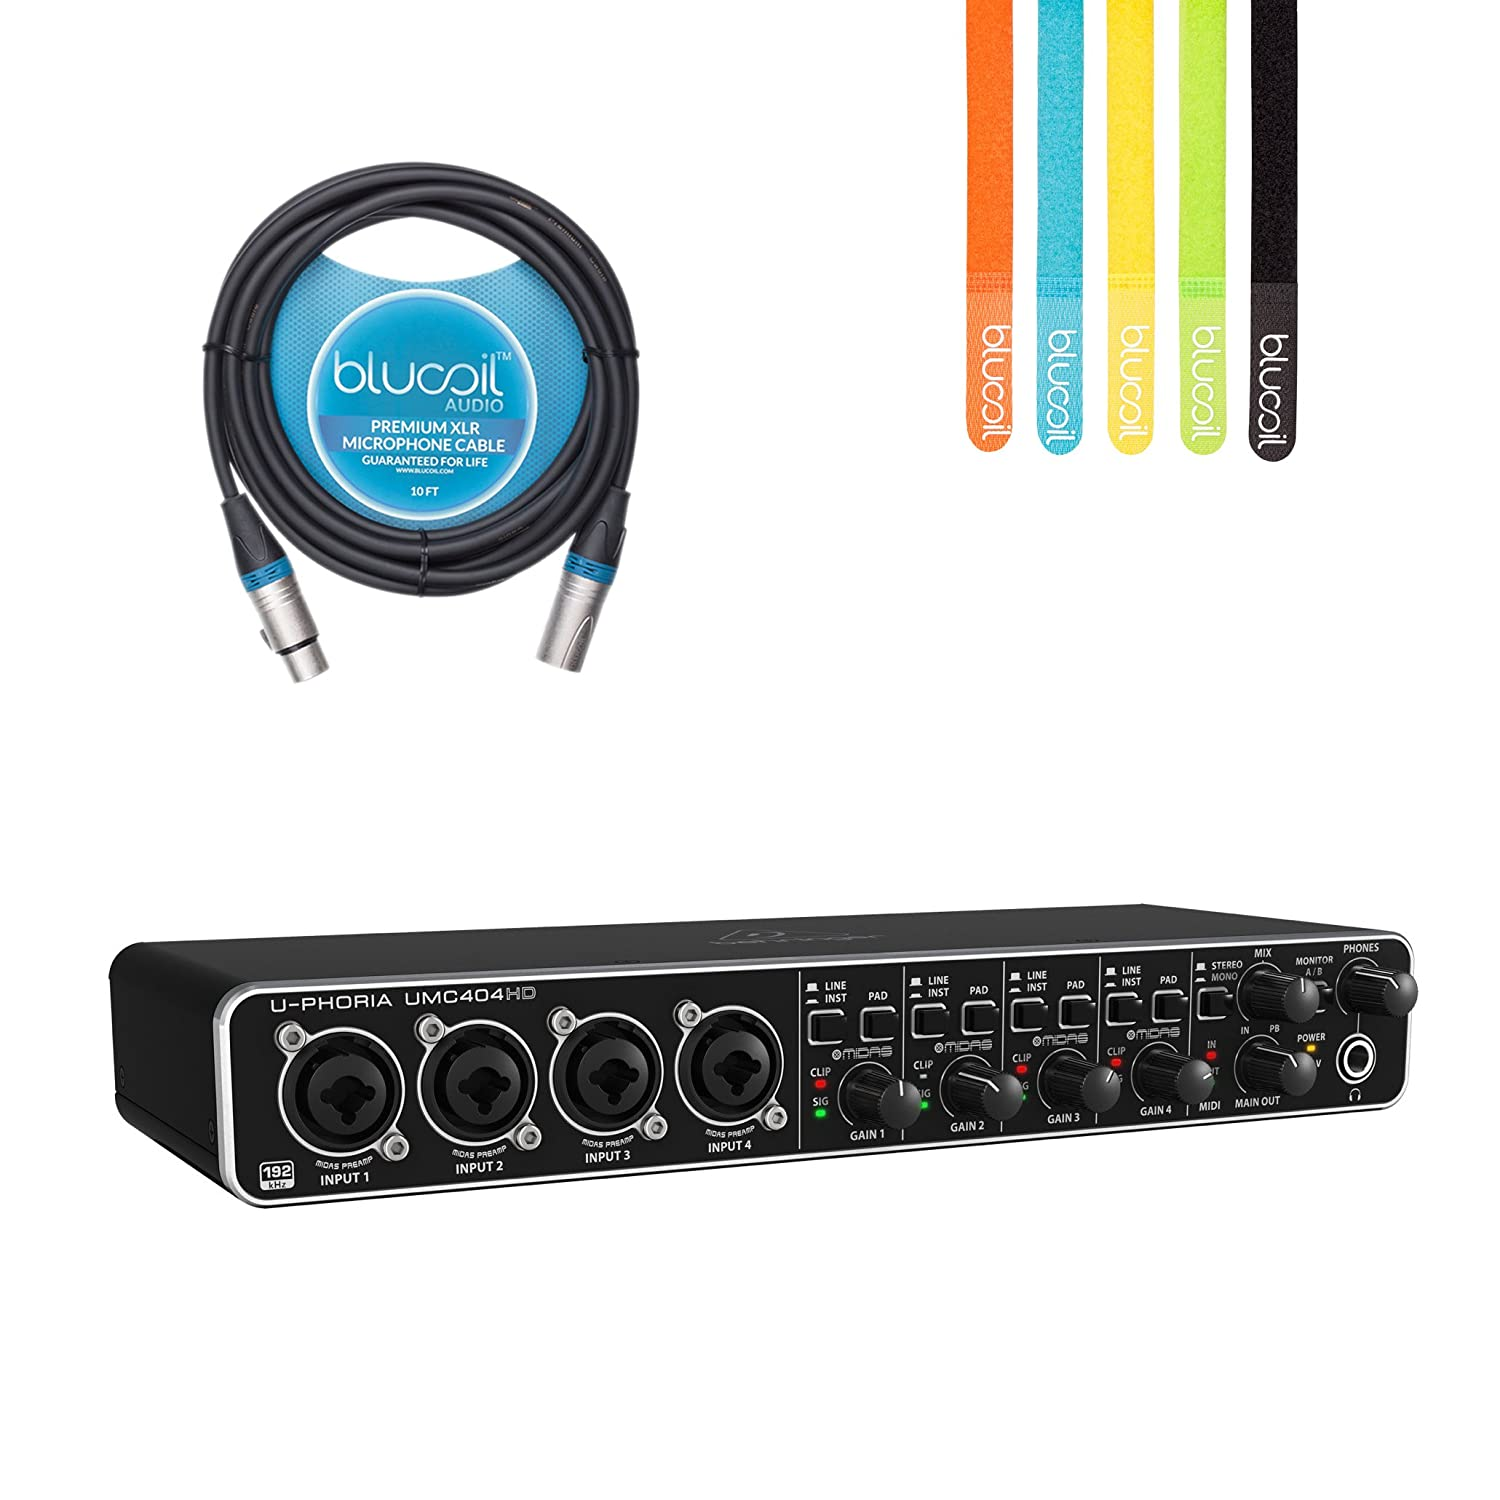 Behringer U-PHORIA UMC404HD USB 2.0 Audio/MIDI Interface -INCLUDES- Blucoil Audio 10' Balanced XLR Cable AND 5 Pack of Cable Ties 4334426997